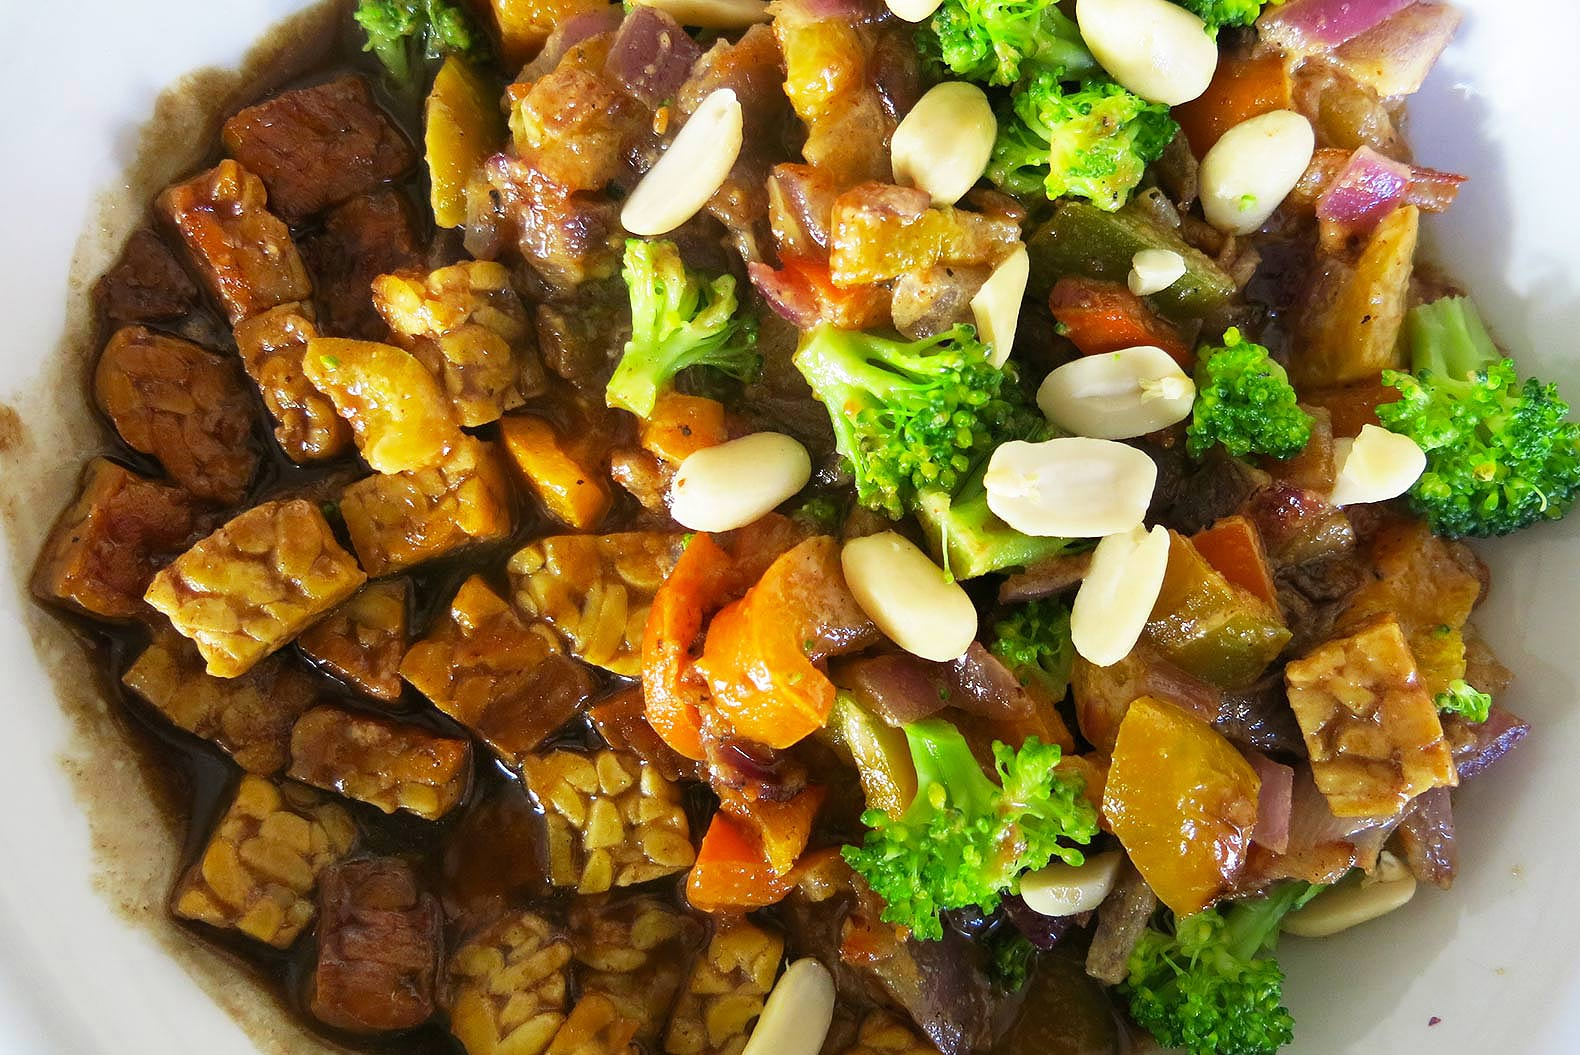 HOW TO: Cook protein-rich, vegan stir-fry with tempeh and peanut sauce